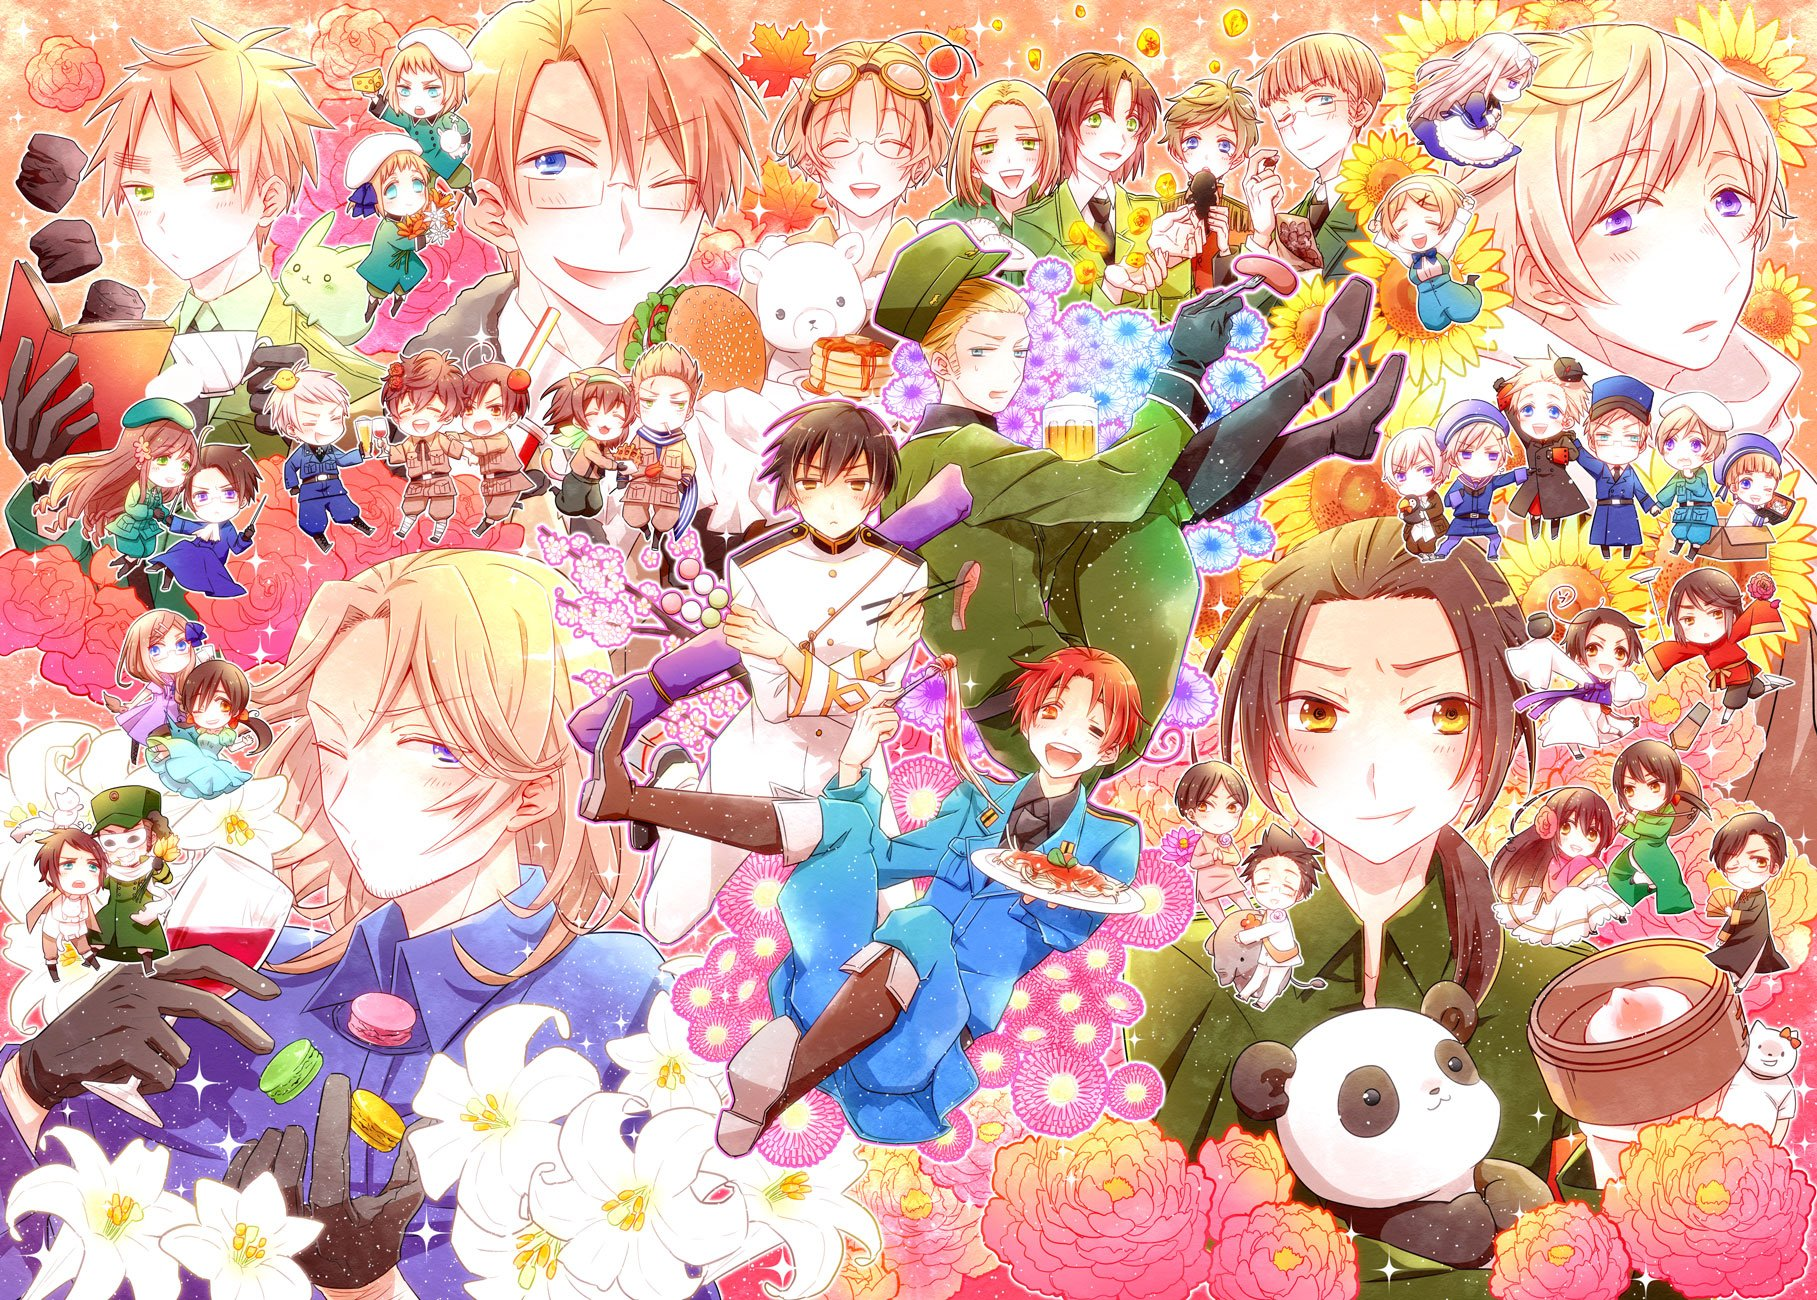 Axis Powers Hetalia g wallpaper 1817x1300 312628 WallpaperUP 1817x1300